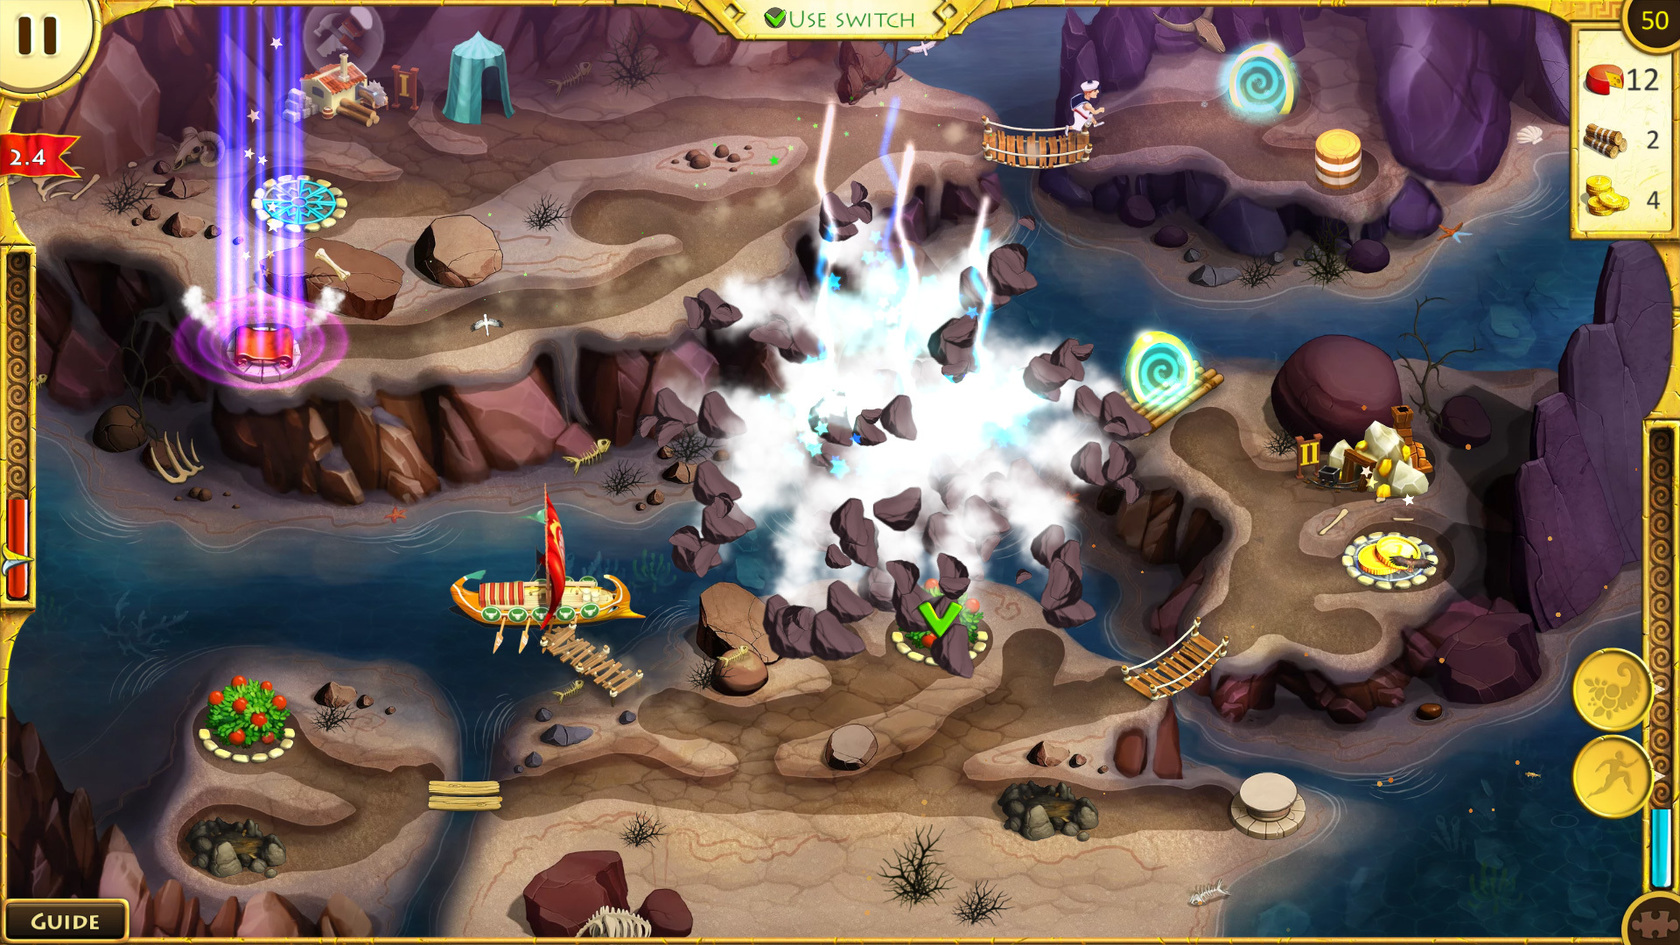 Jason And The Golden Fleece Slot - Try the Free Demo Version